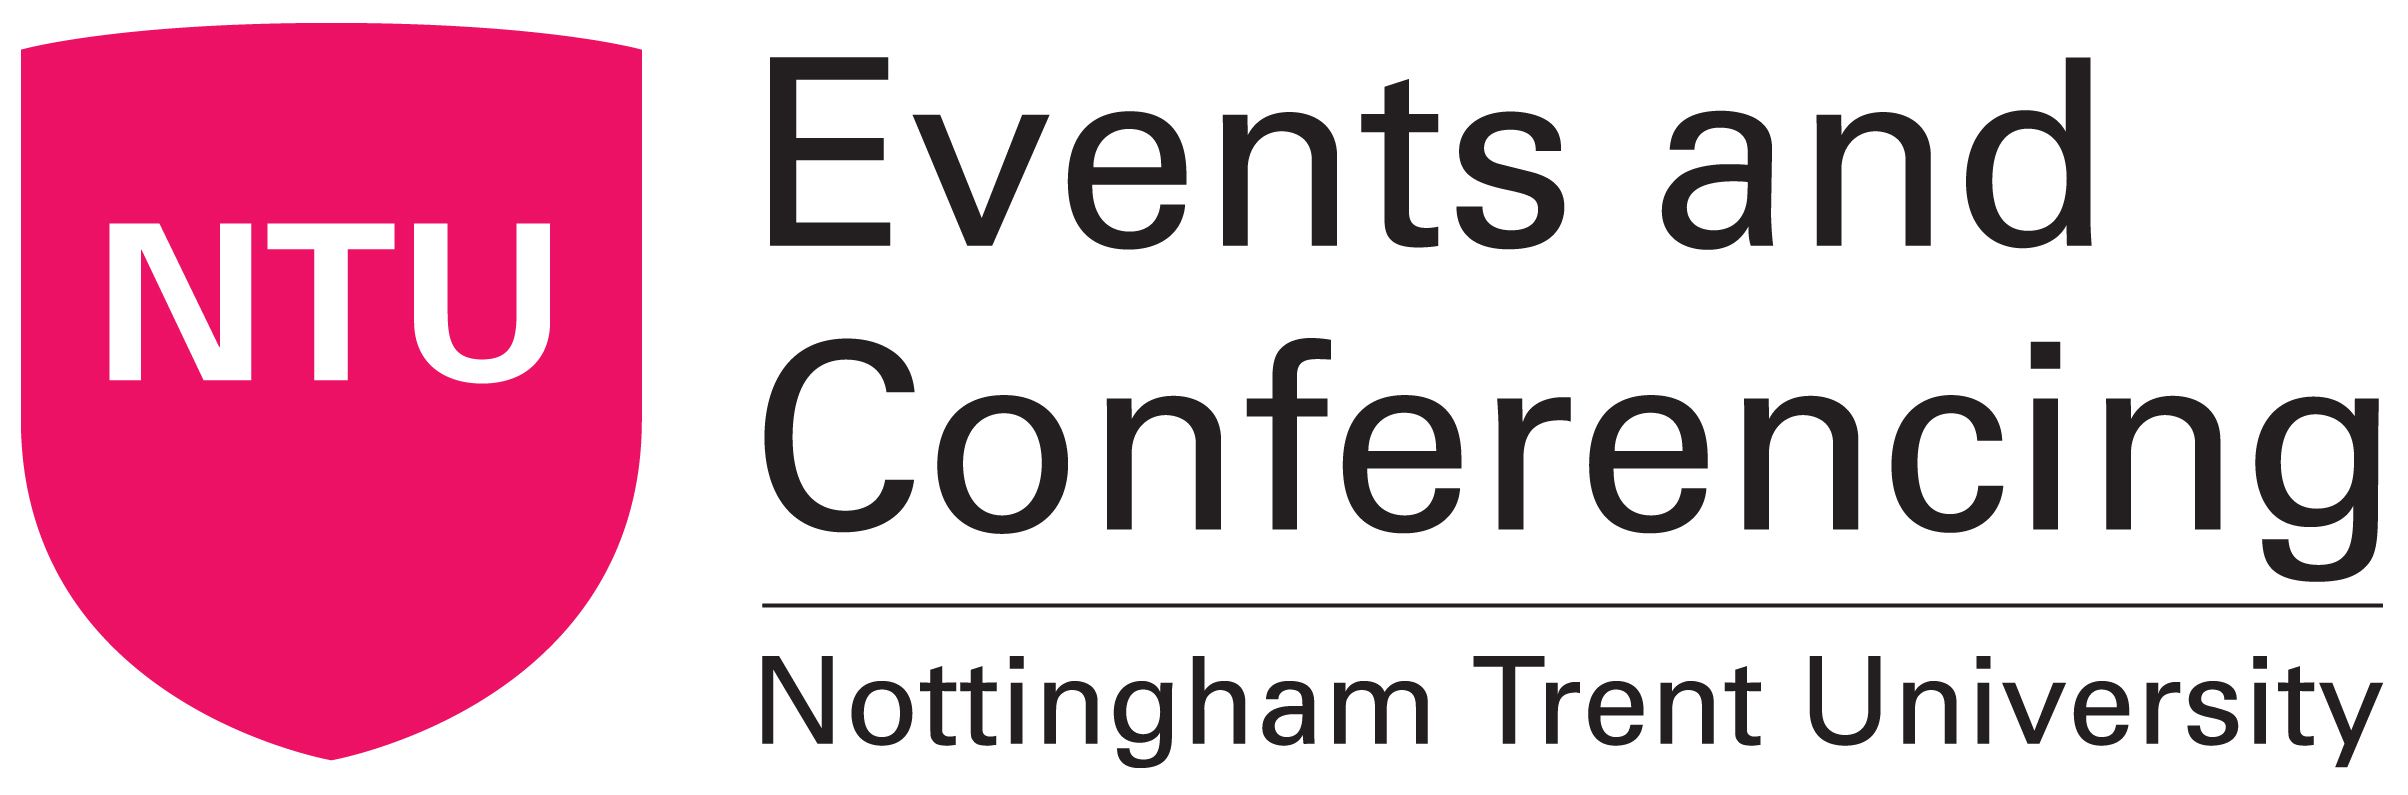 NTU Events and Conferencing